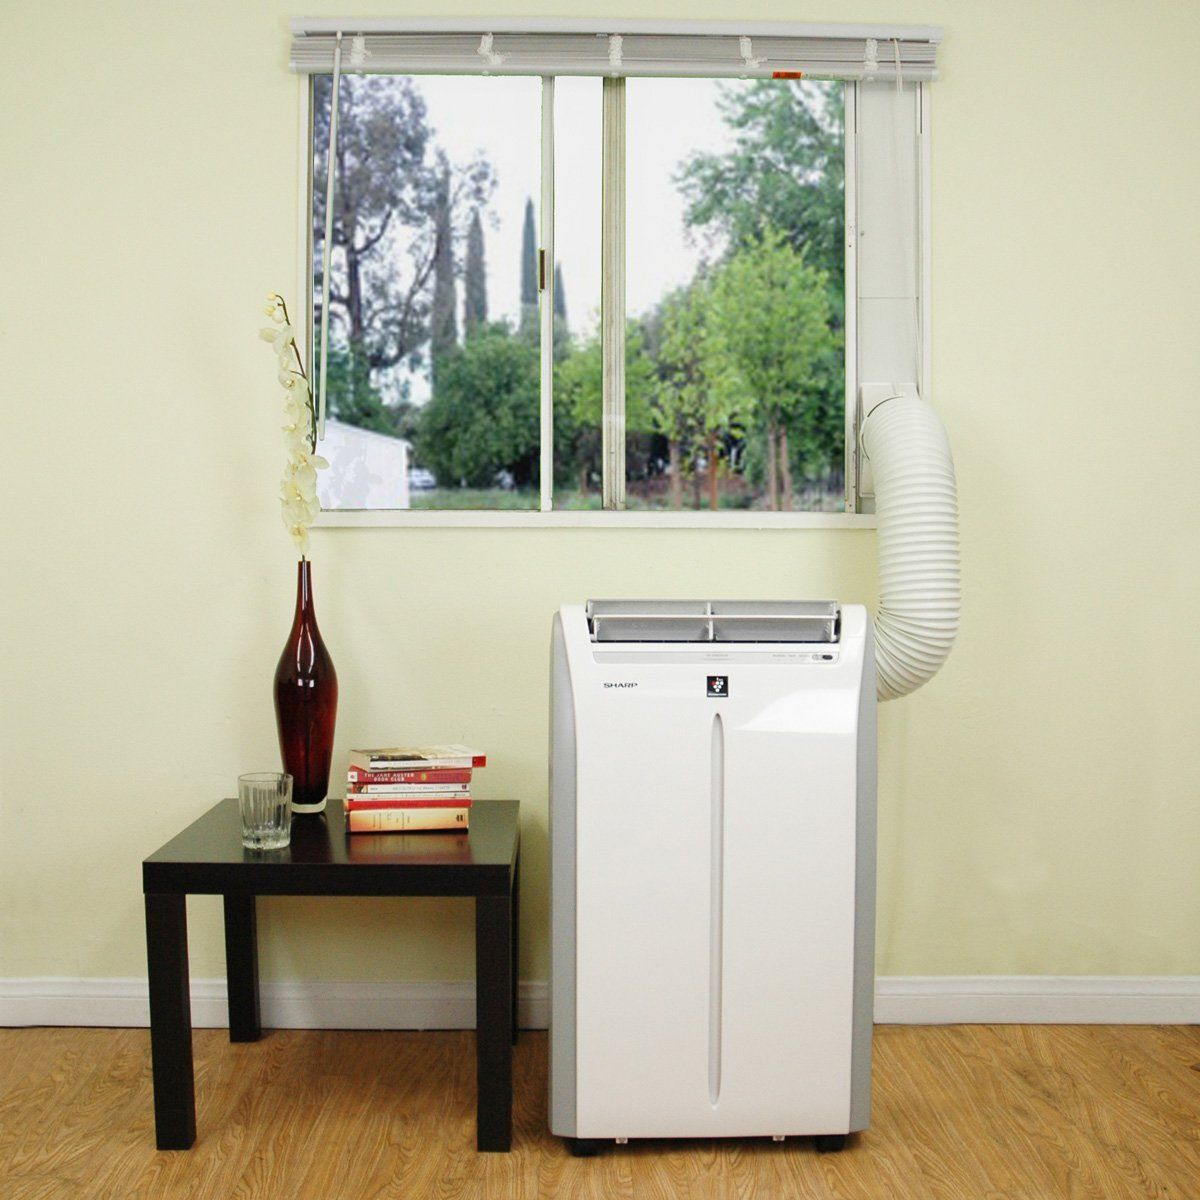 Buy the best portable air conditioner with sliding glass